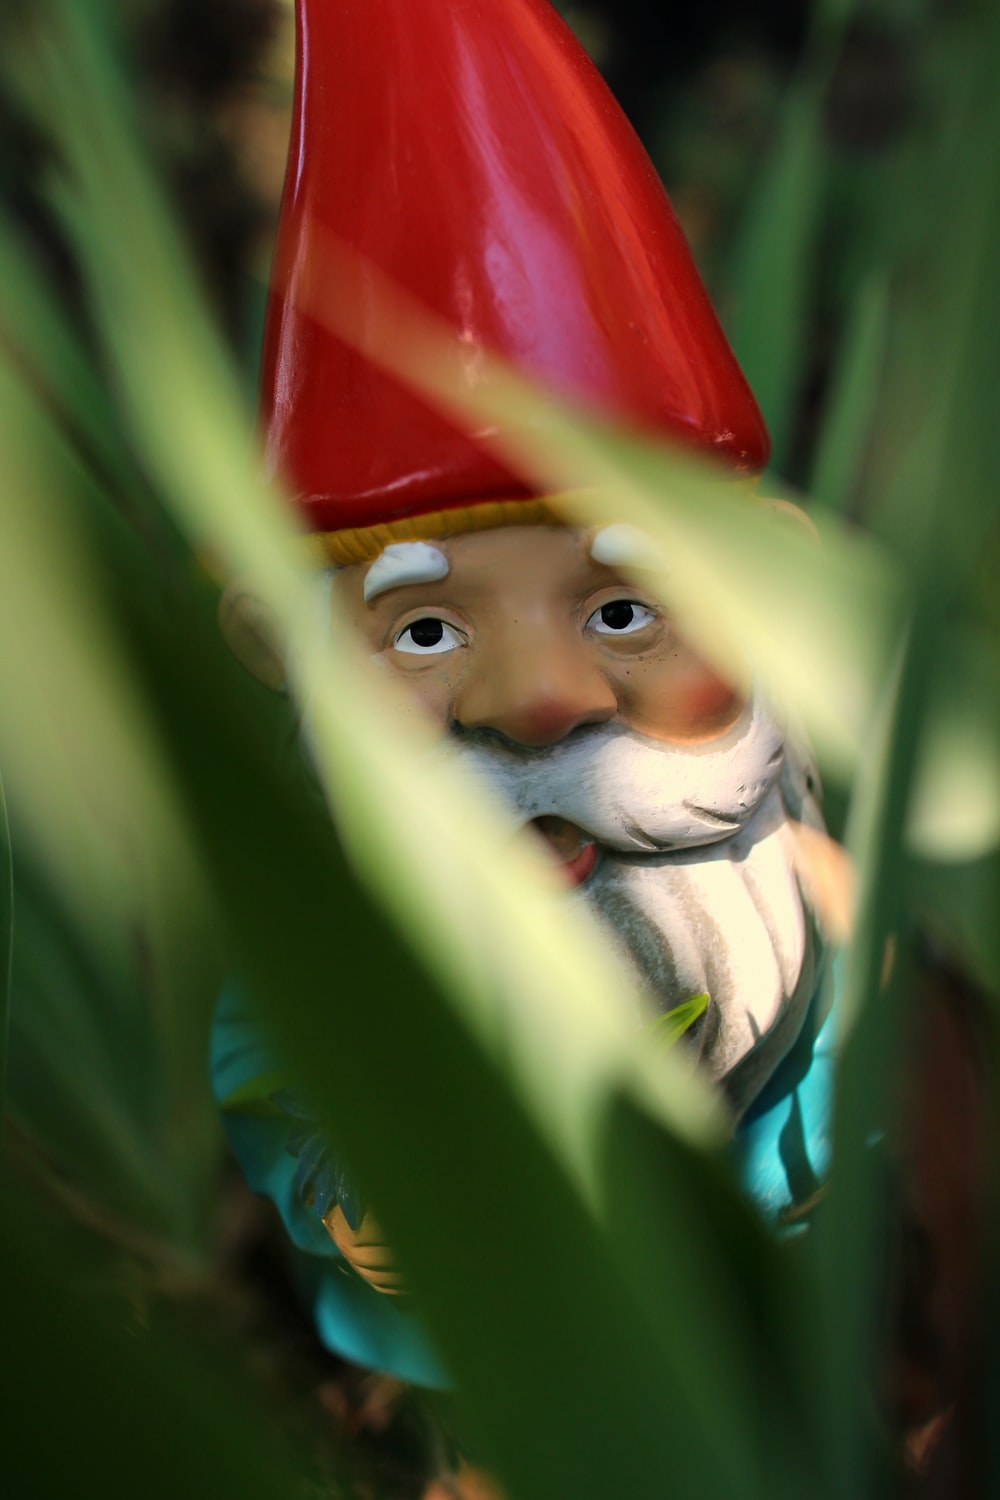 It was the gnomes | HD photo by Sarah Brink (@graystreet) on Unsplash